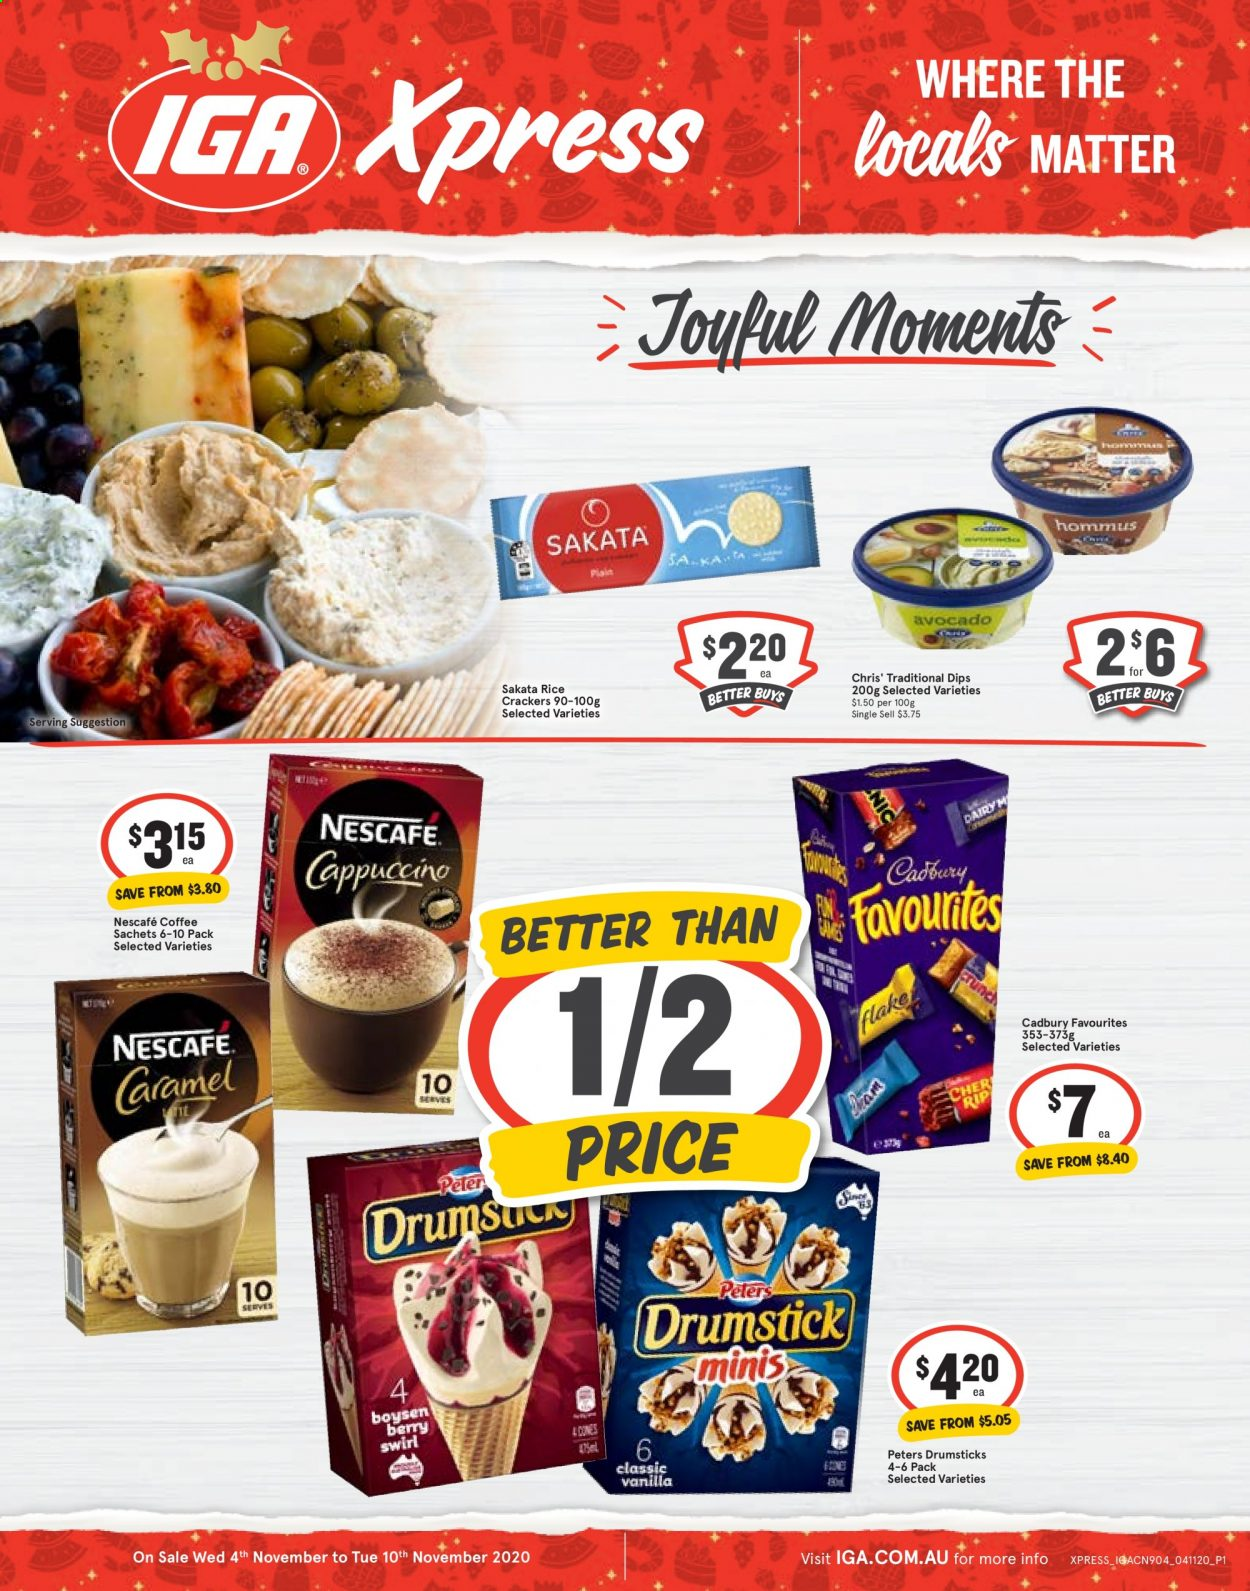 IGA Xpress Catalogue - 4.11.2020 - 10.11.2020 - Sales products - avocado, caramel, coffee, crackers, rice, berry, nescafé. Page 1.